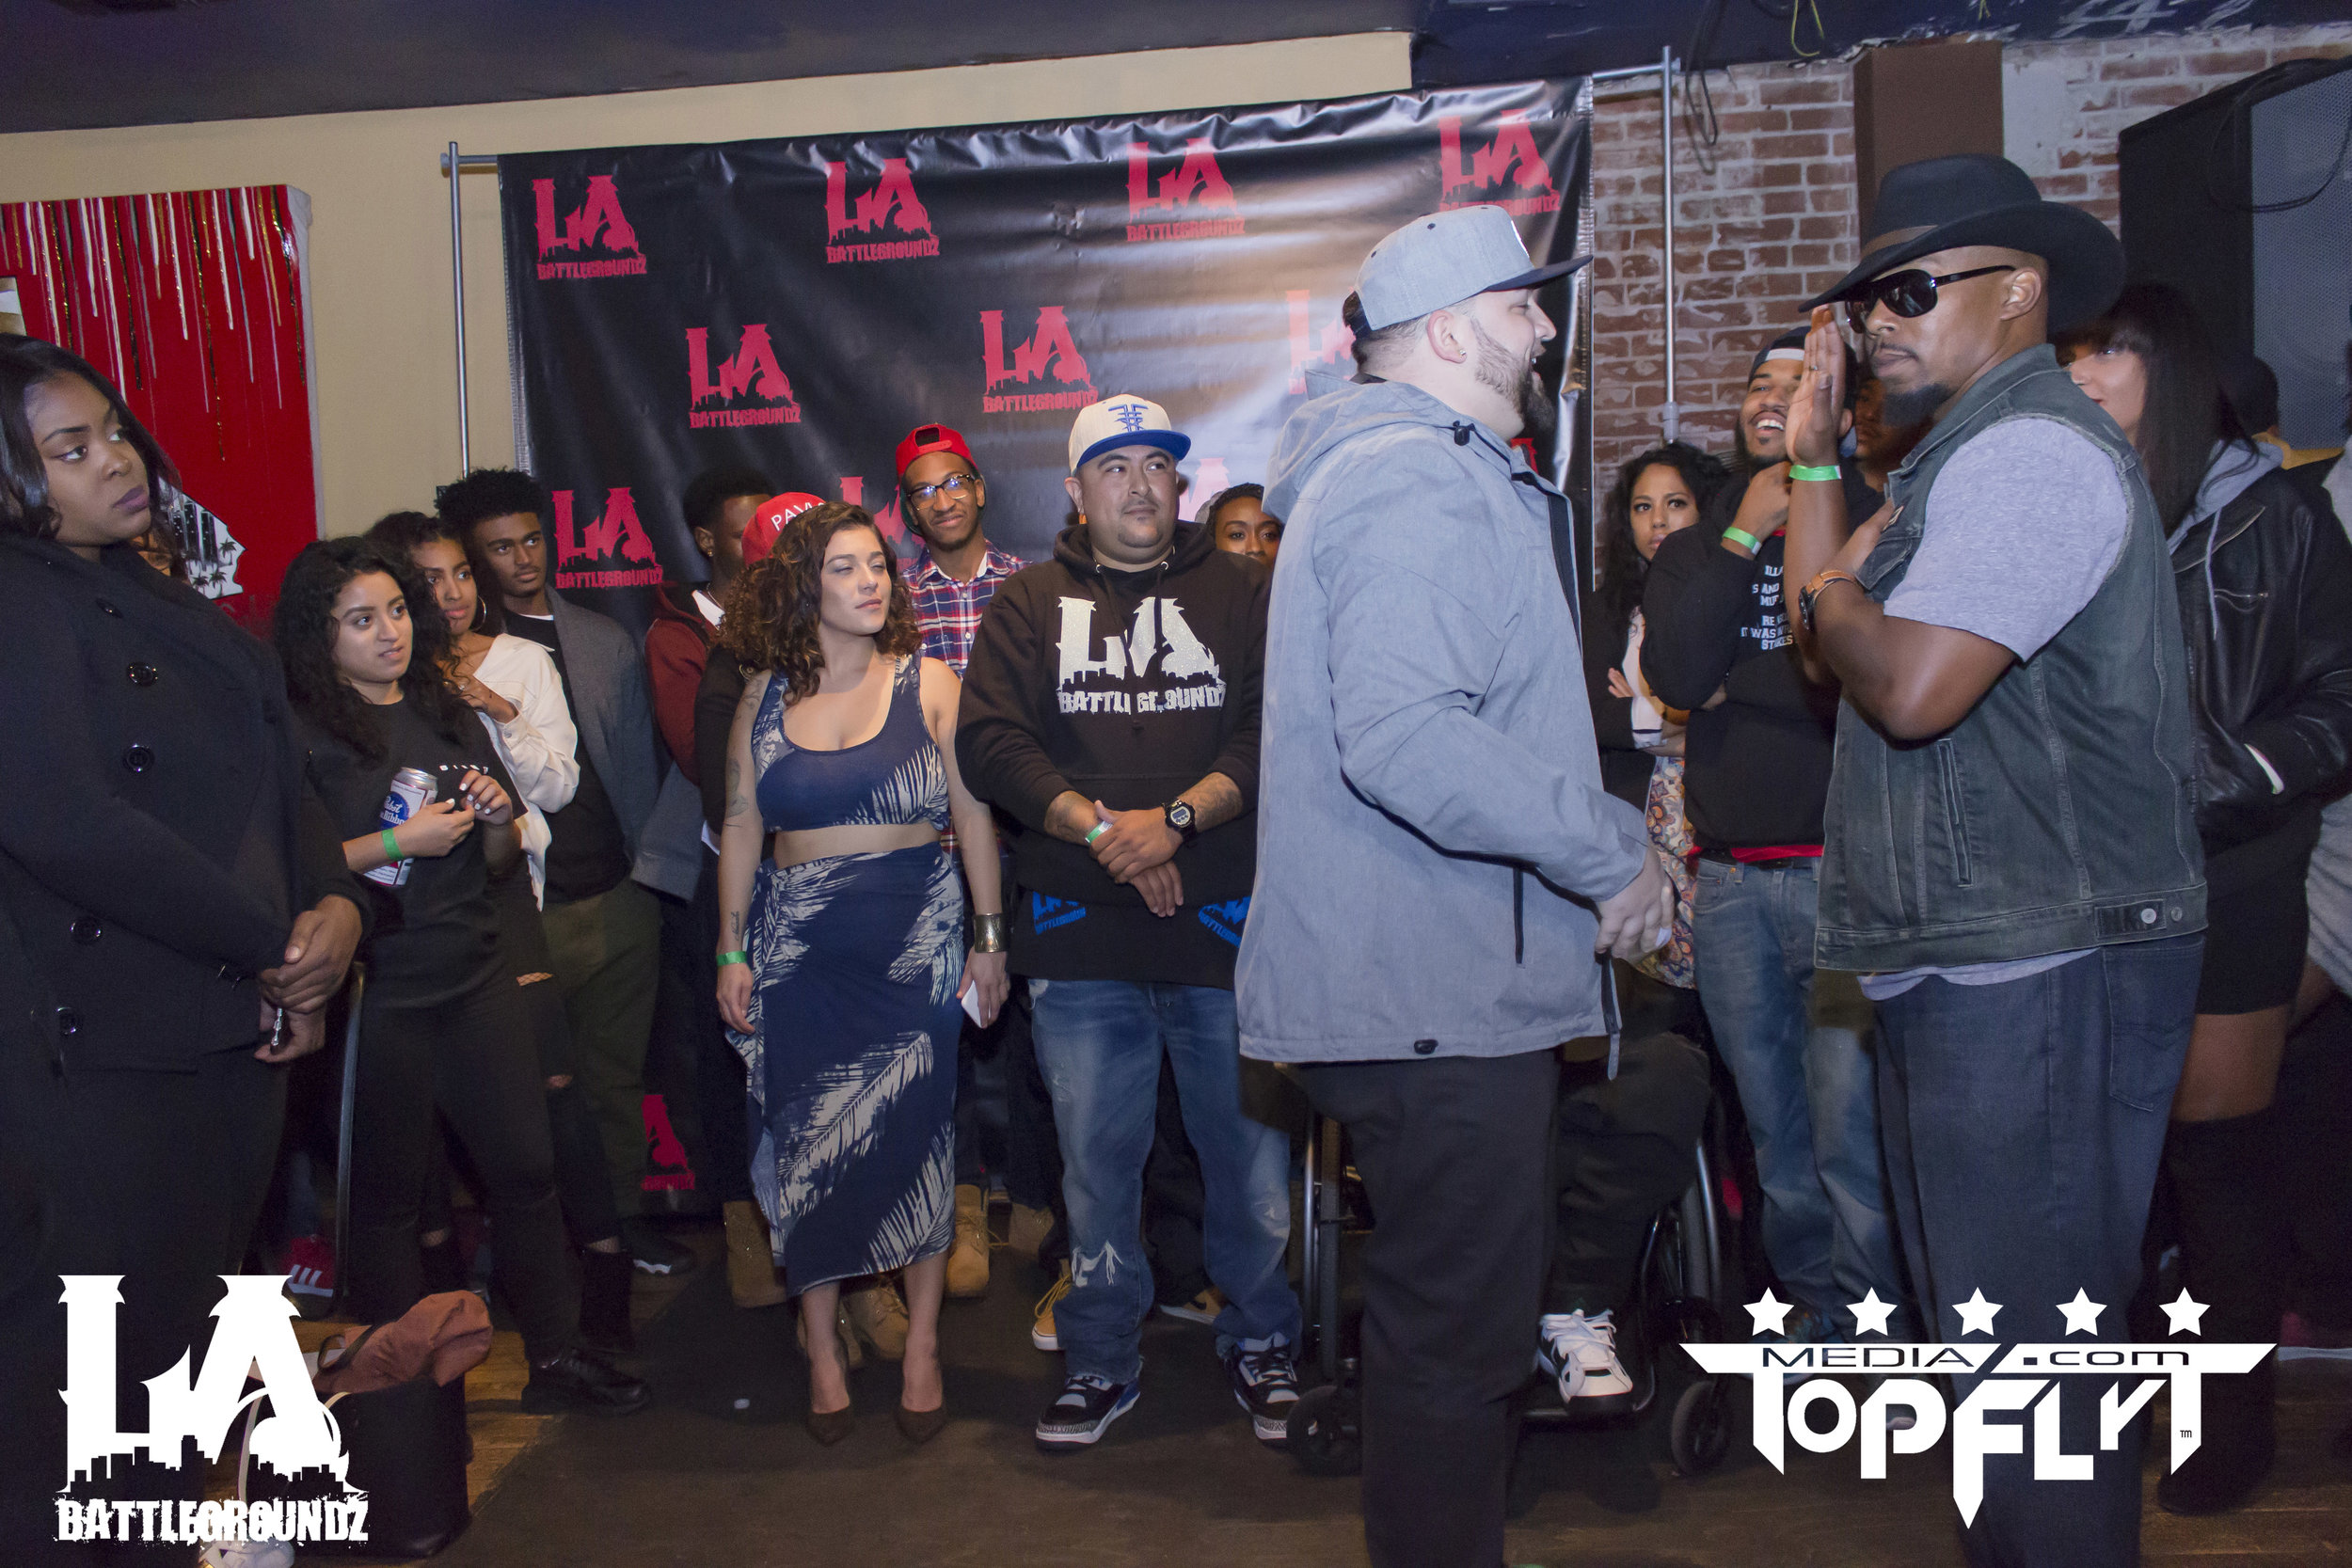 LA Battlegroundz - Decembarfest - The Christening_50.jpg